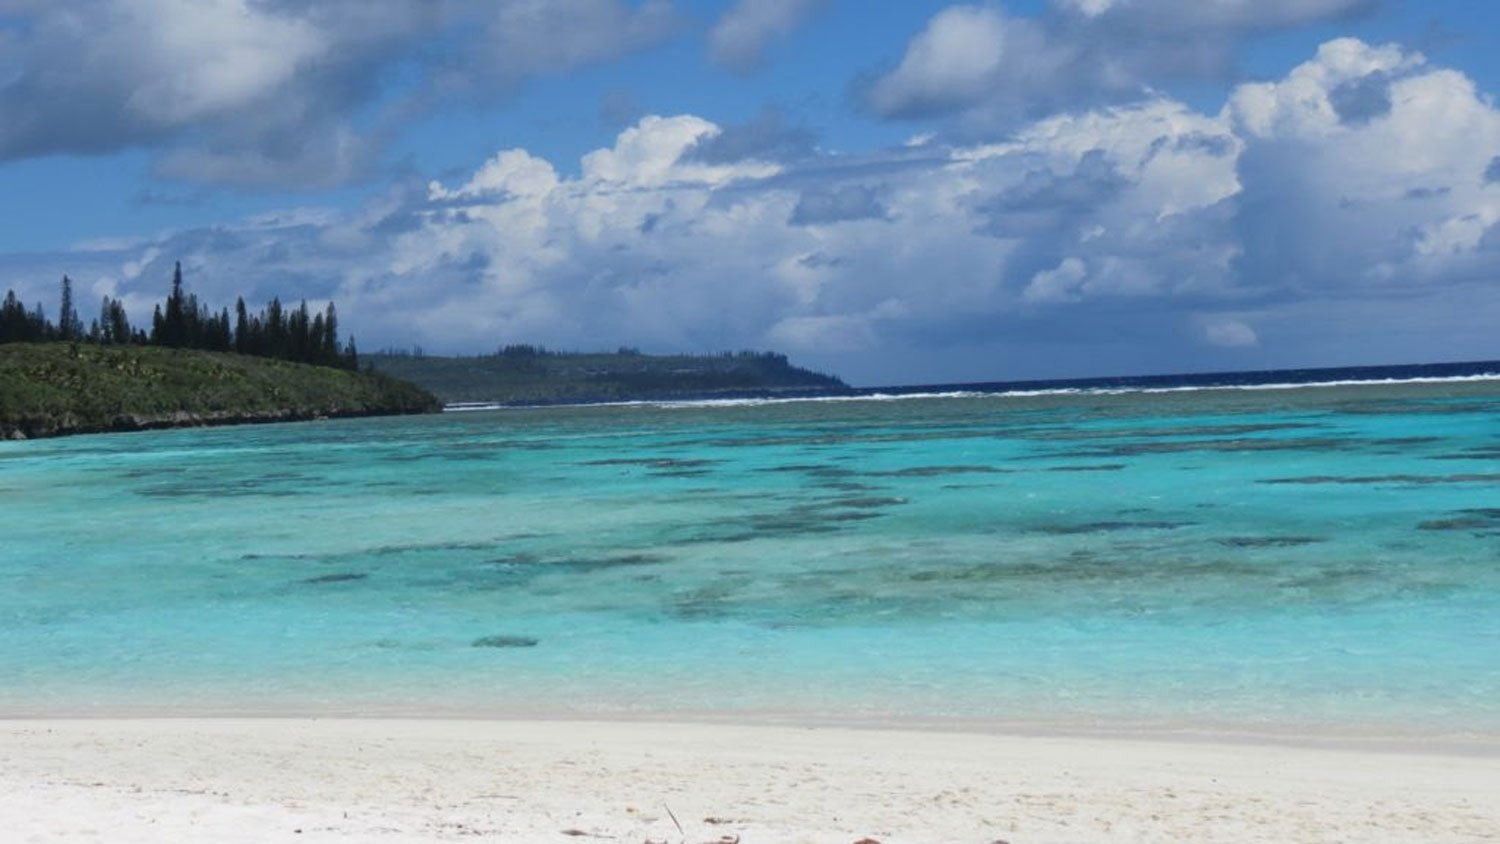 South Pacific Island Vacation destinations - New caledonia